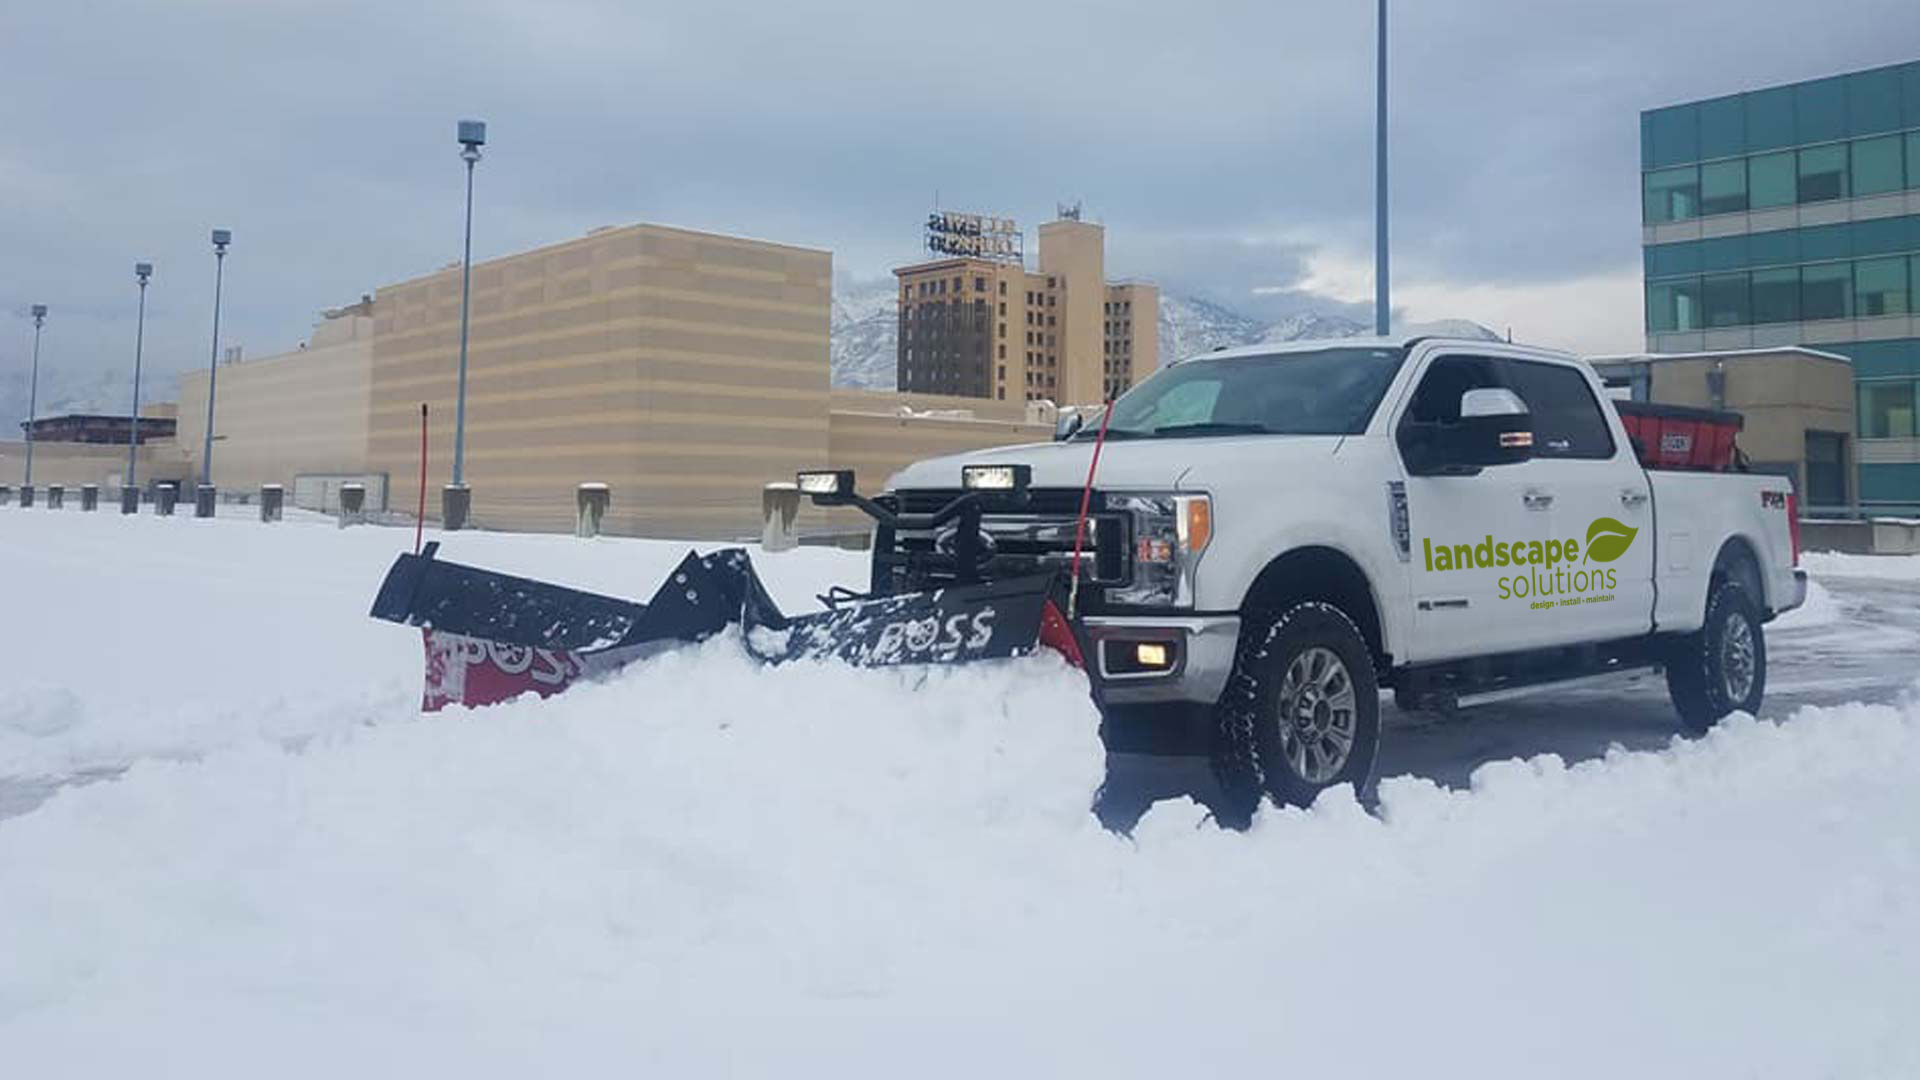 Our truck and plow removing snow from a large commercial parking lot located in Ogden, UT.